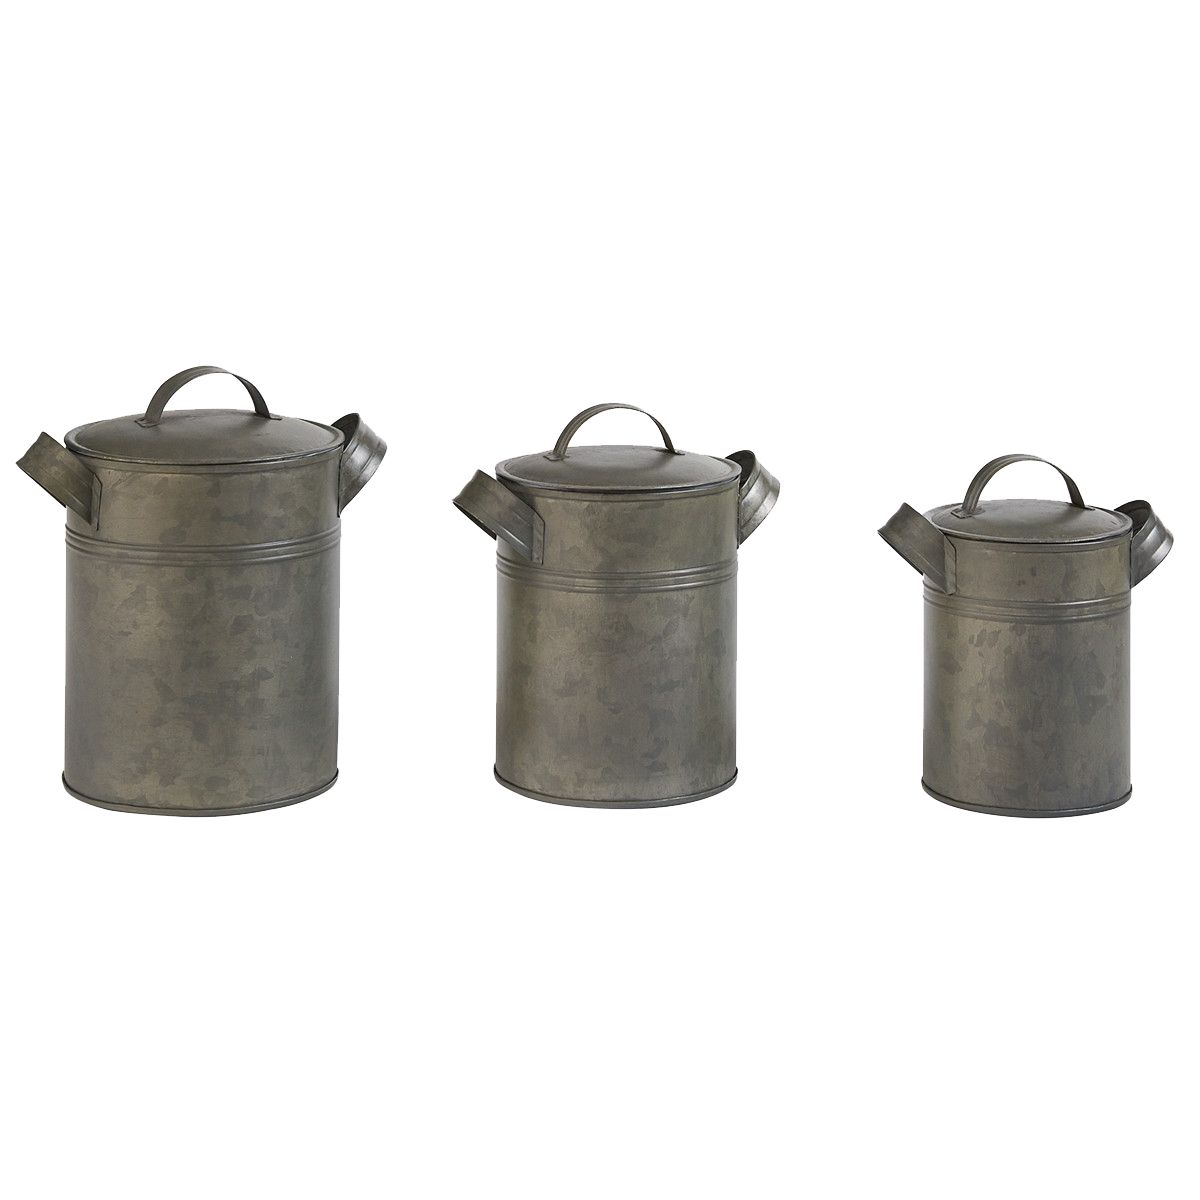 Metal Jug Canisters - Set of 3